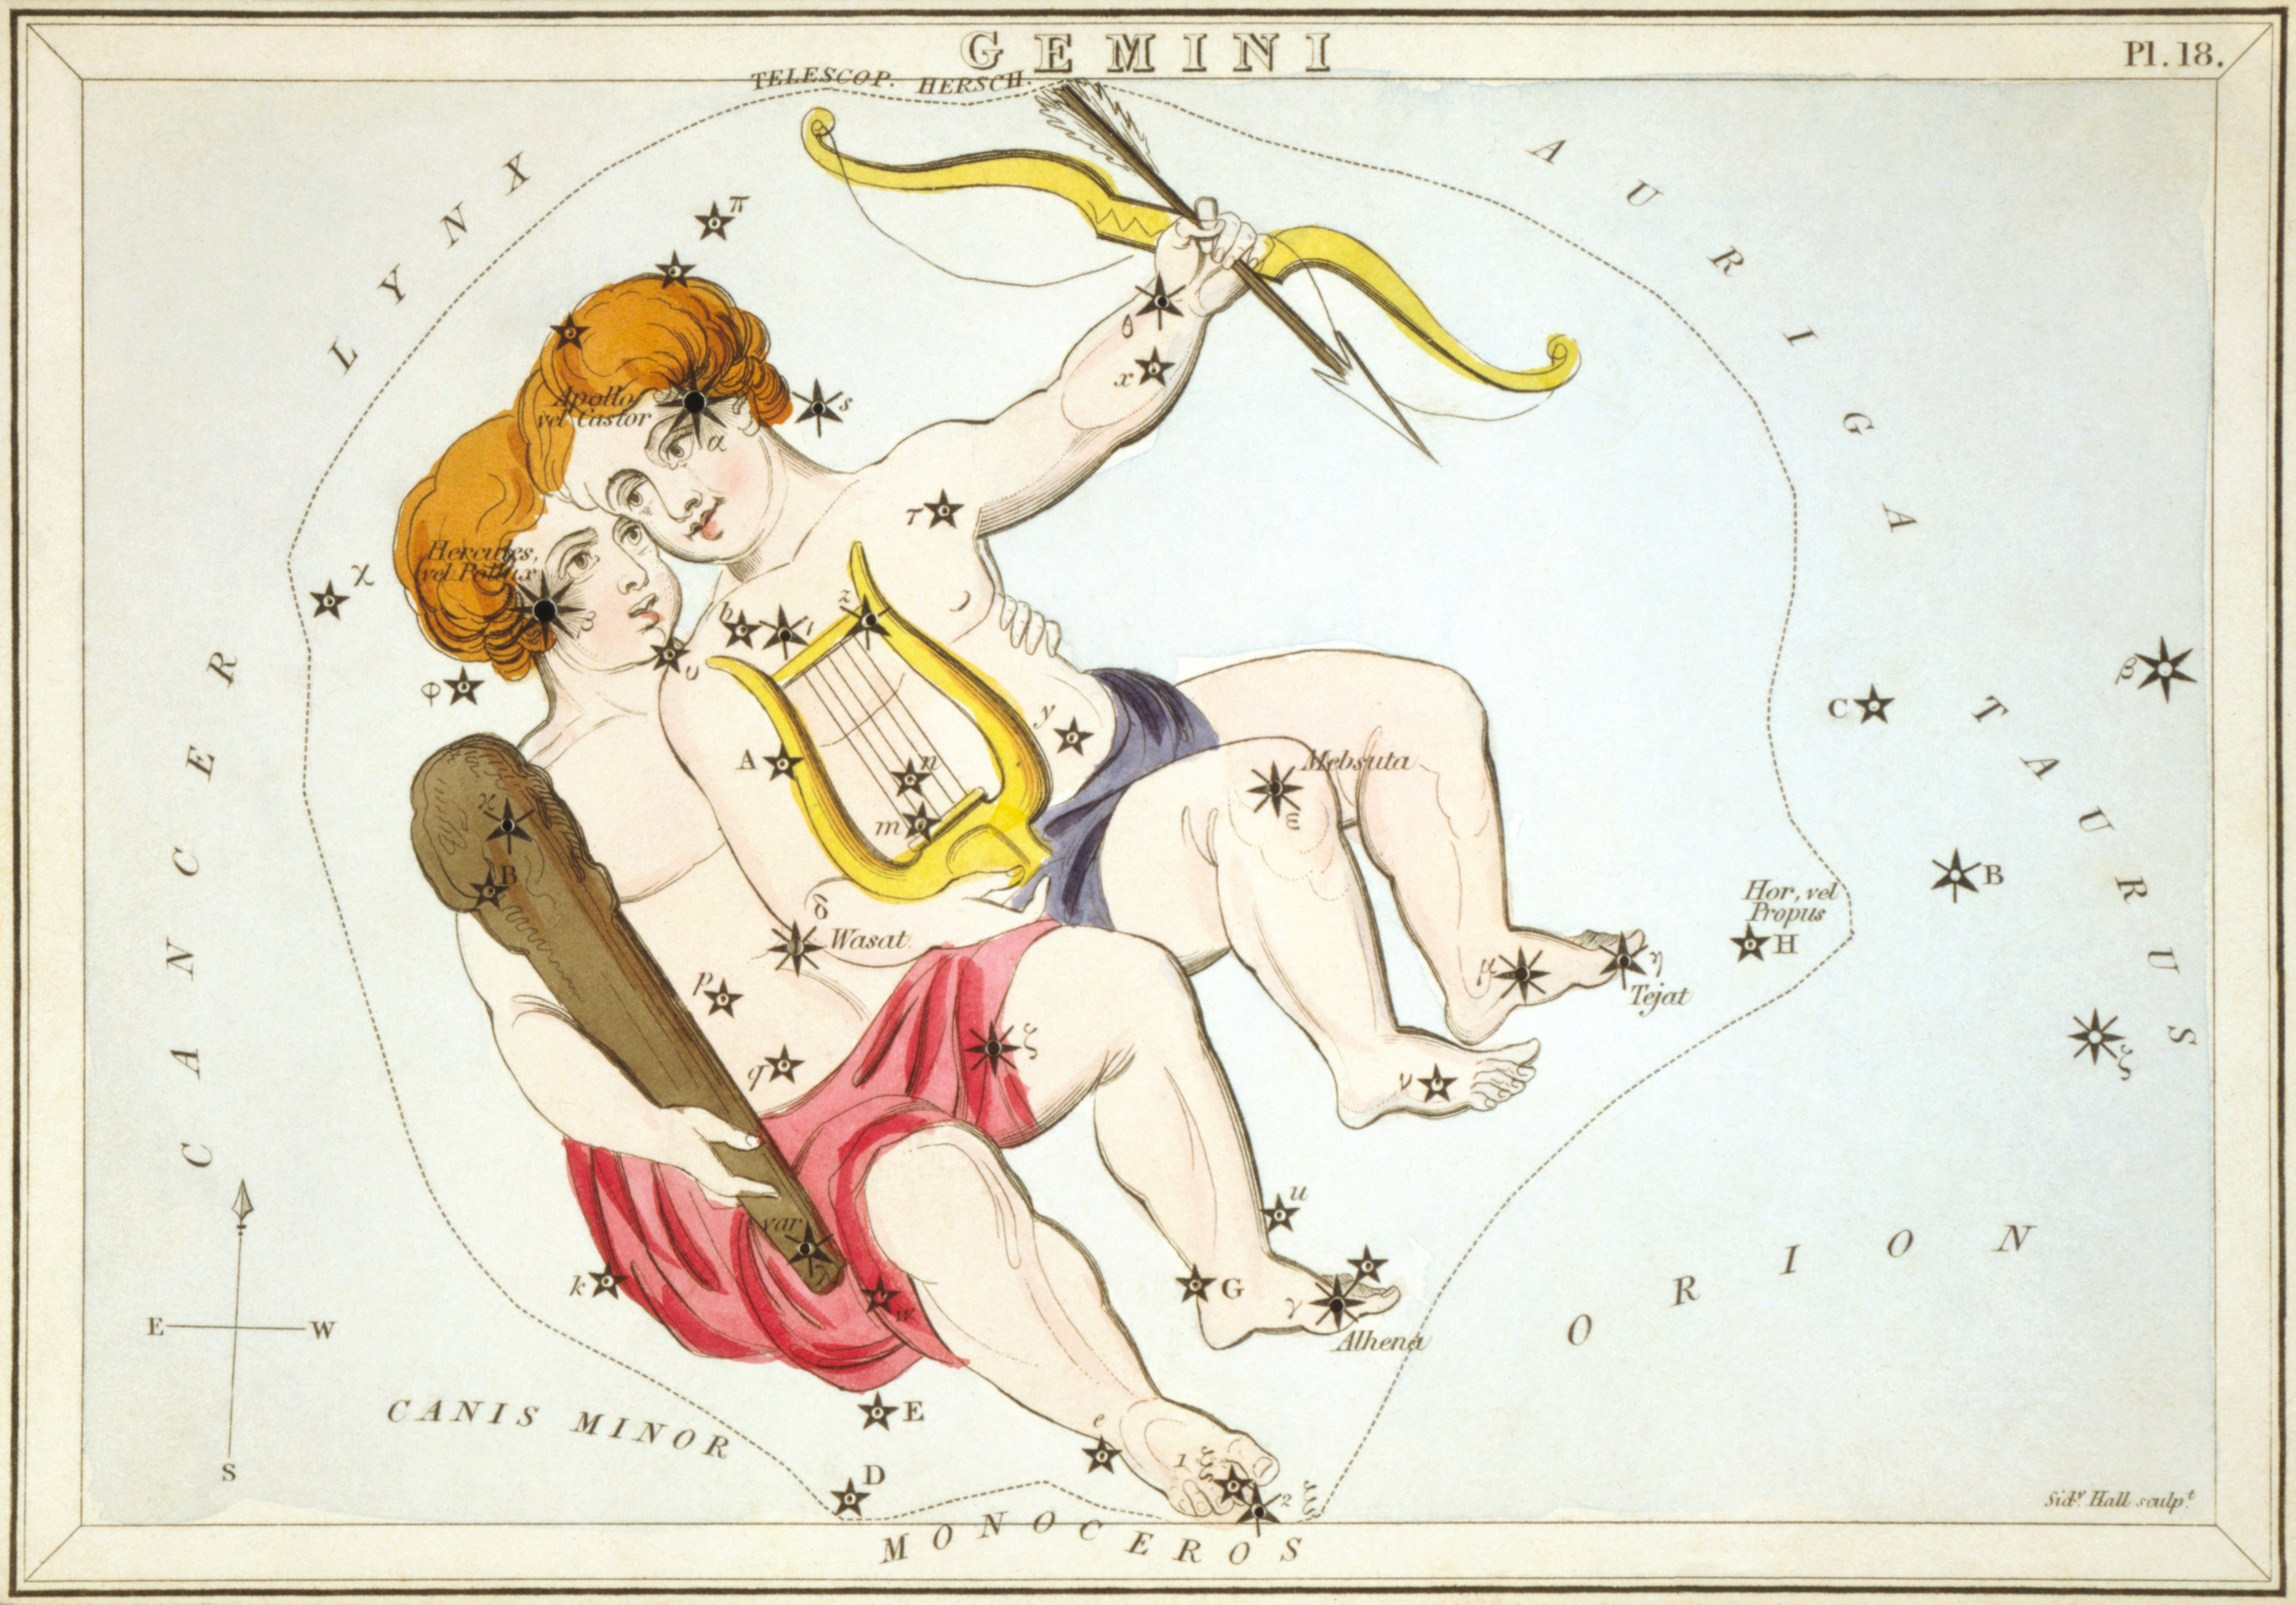 The signs of the Zodiac have their own origin myths. Let's look at the legends behind the air signs: Gemini, Libra, and Aquarius!